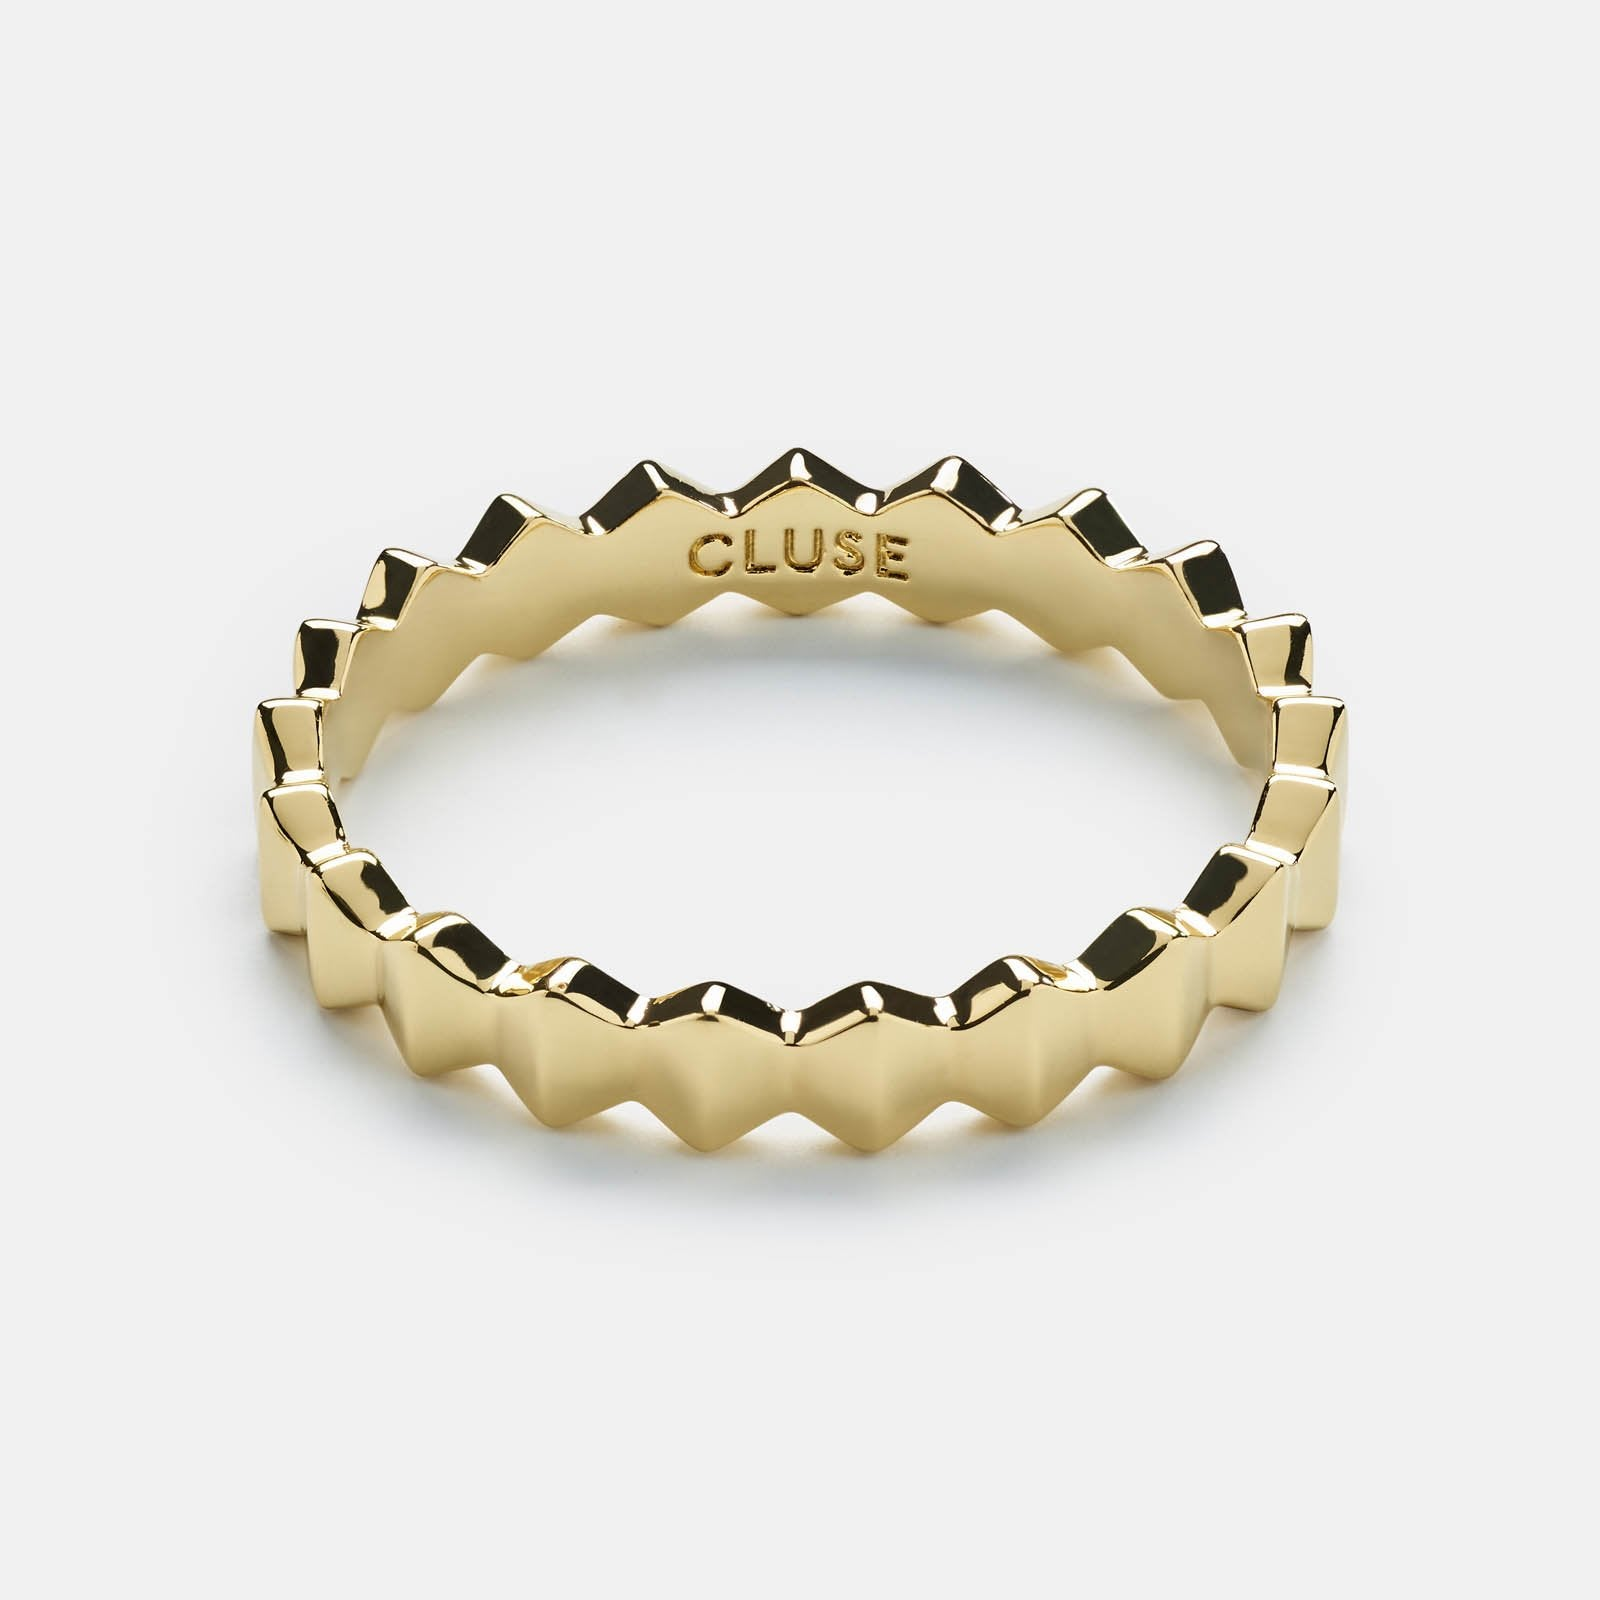 CLUSE Essentielle Gold All Hexagons Ring-52 CLJ41006-52 - Anello taglia 52